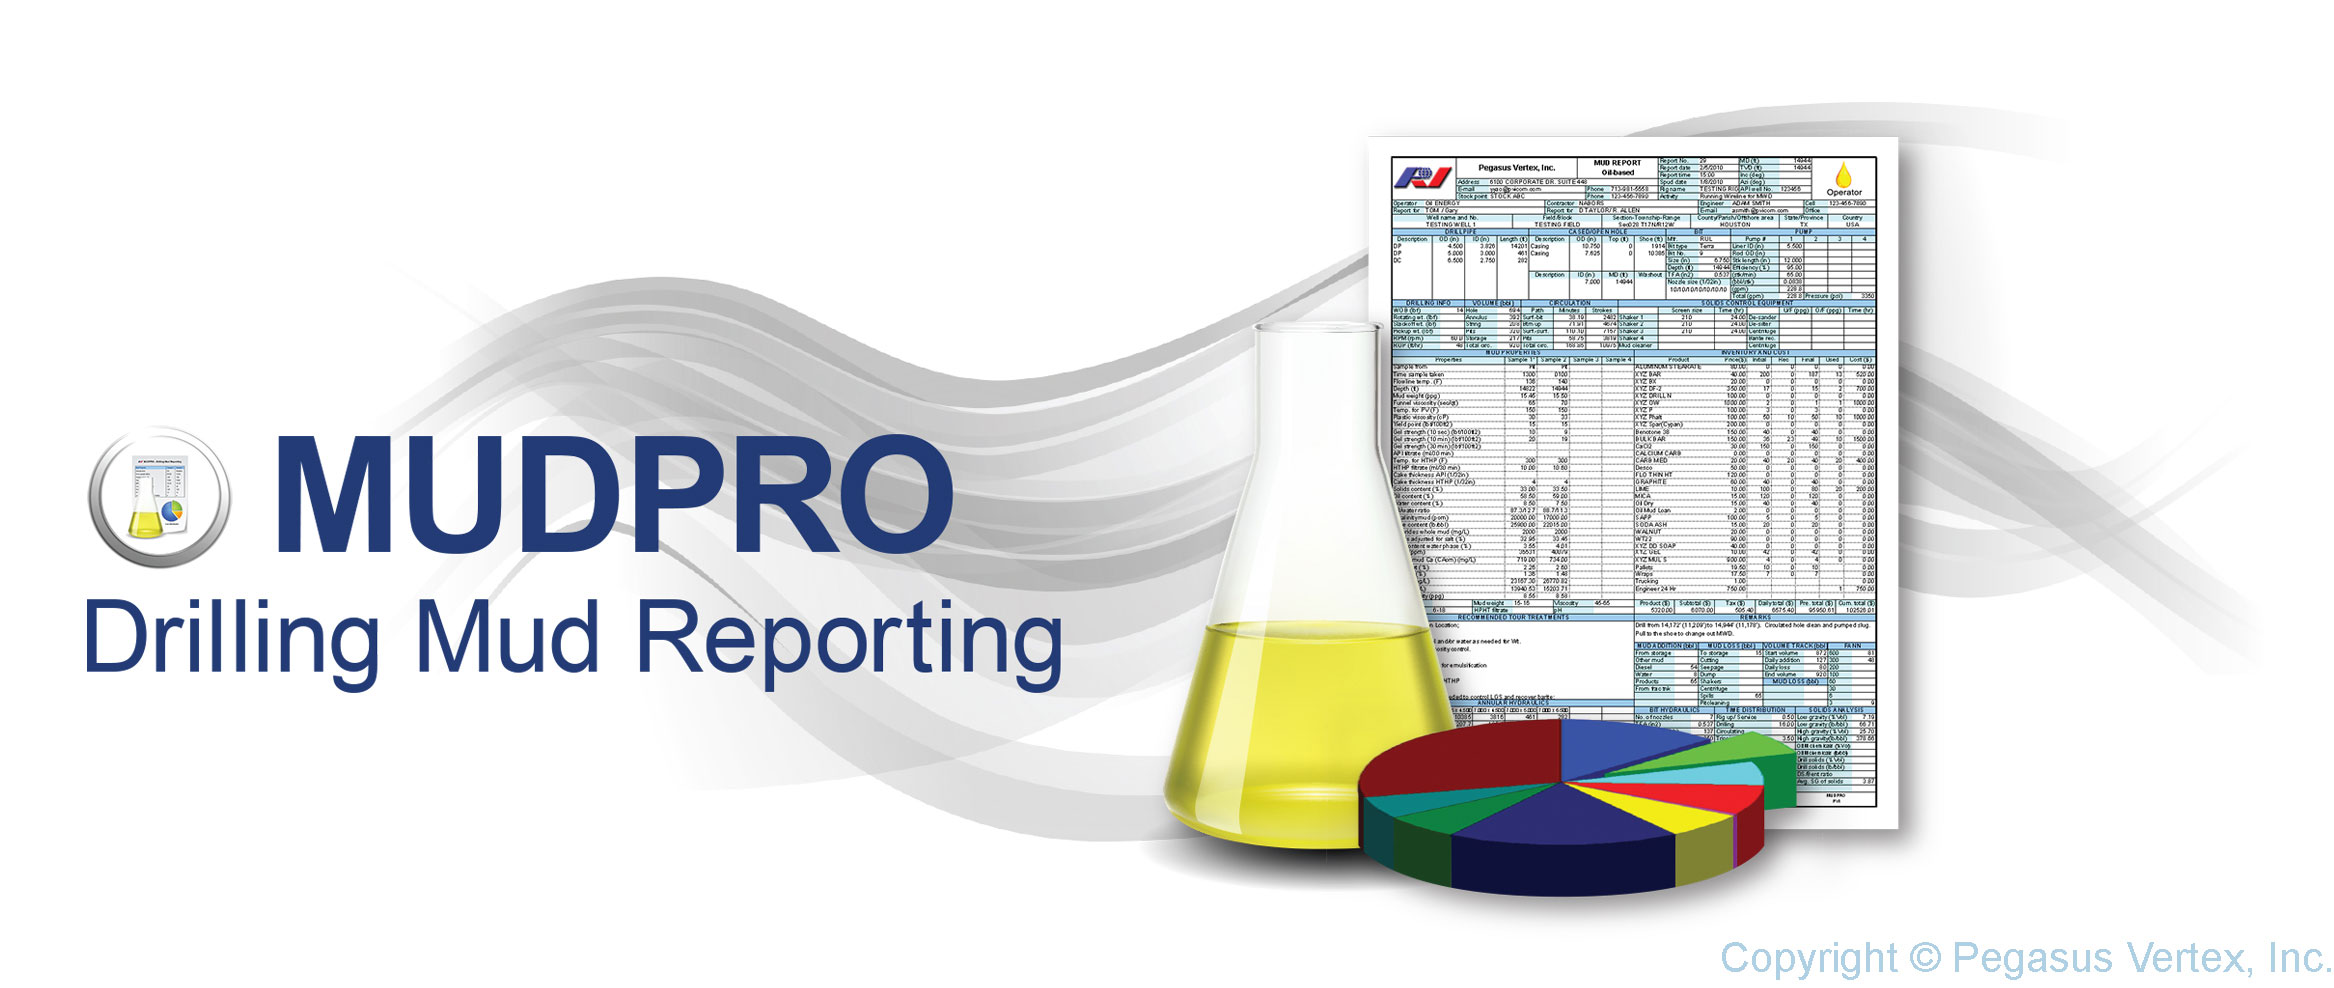 MUDPRO - drilling mud reporting